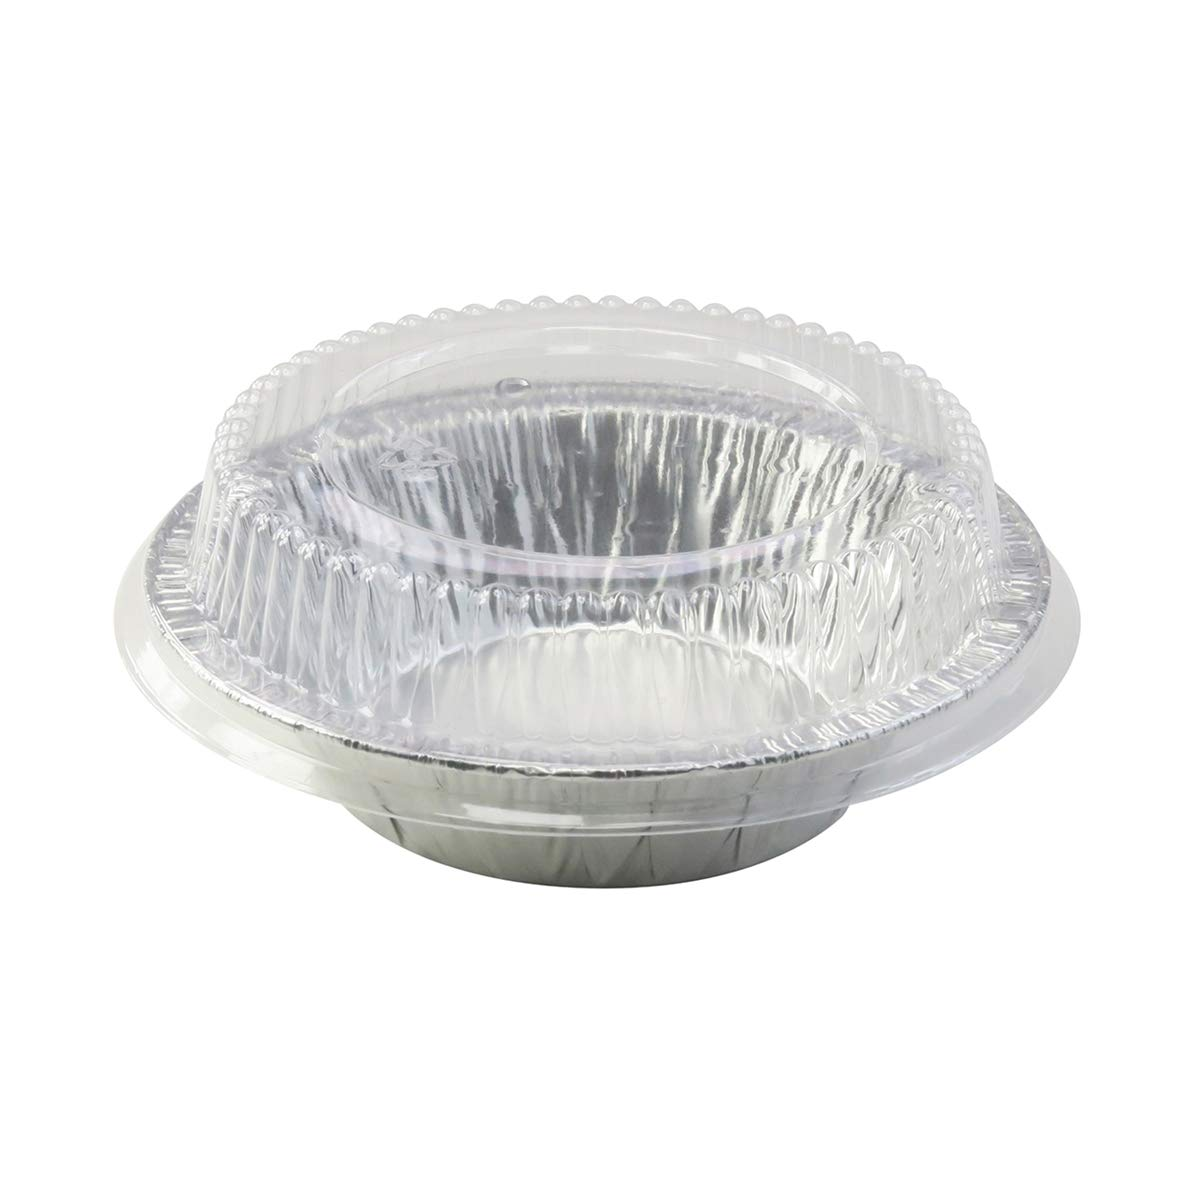 New Disposable Aluminum 5'' Tart Pan/individual Pot Pie Pan w/ Clear Dome Lid -501P (50) by KitchenDance